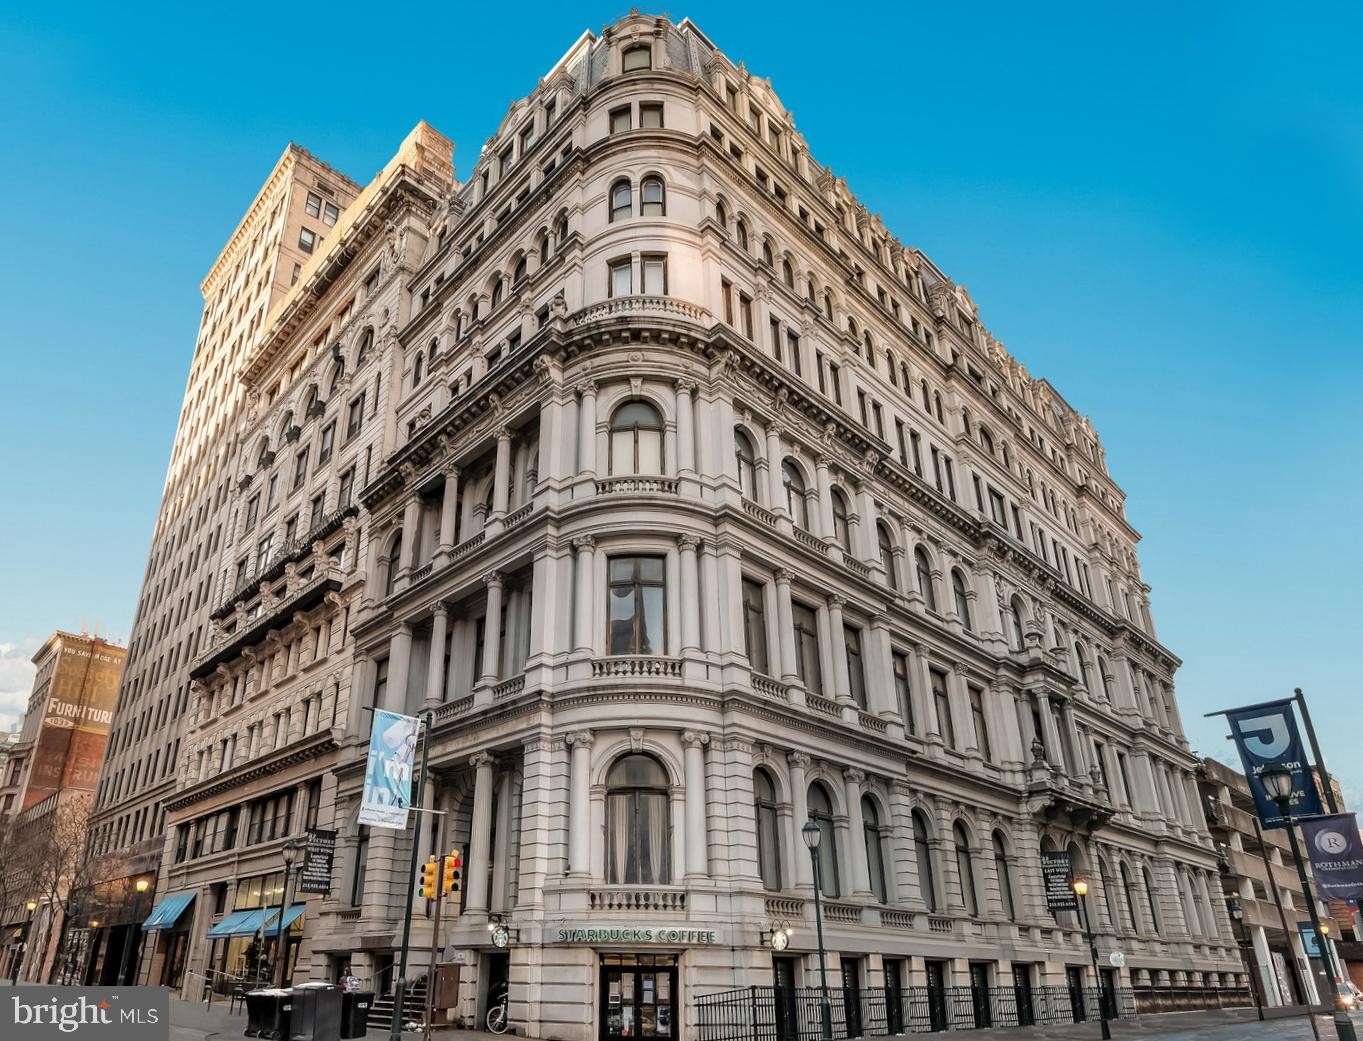 Sun Splashed PENTHOUSE 1 bedroom, 1bath FOR SALE at The Victory building. All open living and dining area. Kitchen with granite counter tops, stainless steel appliances, and fantastic cabinet and counter space. Enjoy living in this magnificent structure boasting one of the most finest examples of 2nd empire French architecture. Directly across the street from Thomas Jefferson University Hospital, just minutes from Pennsylvania Hospital, and Washington Square. Starbucks and Gym in the building.